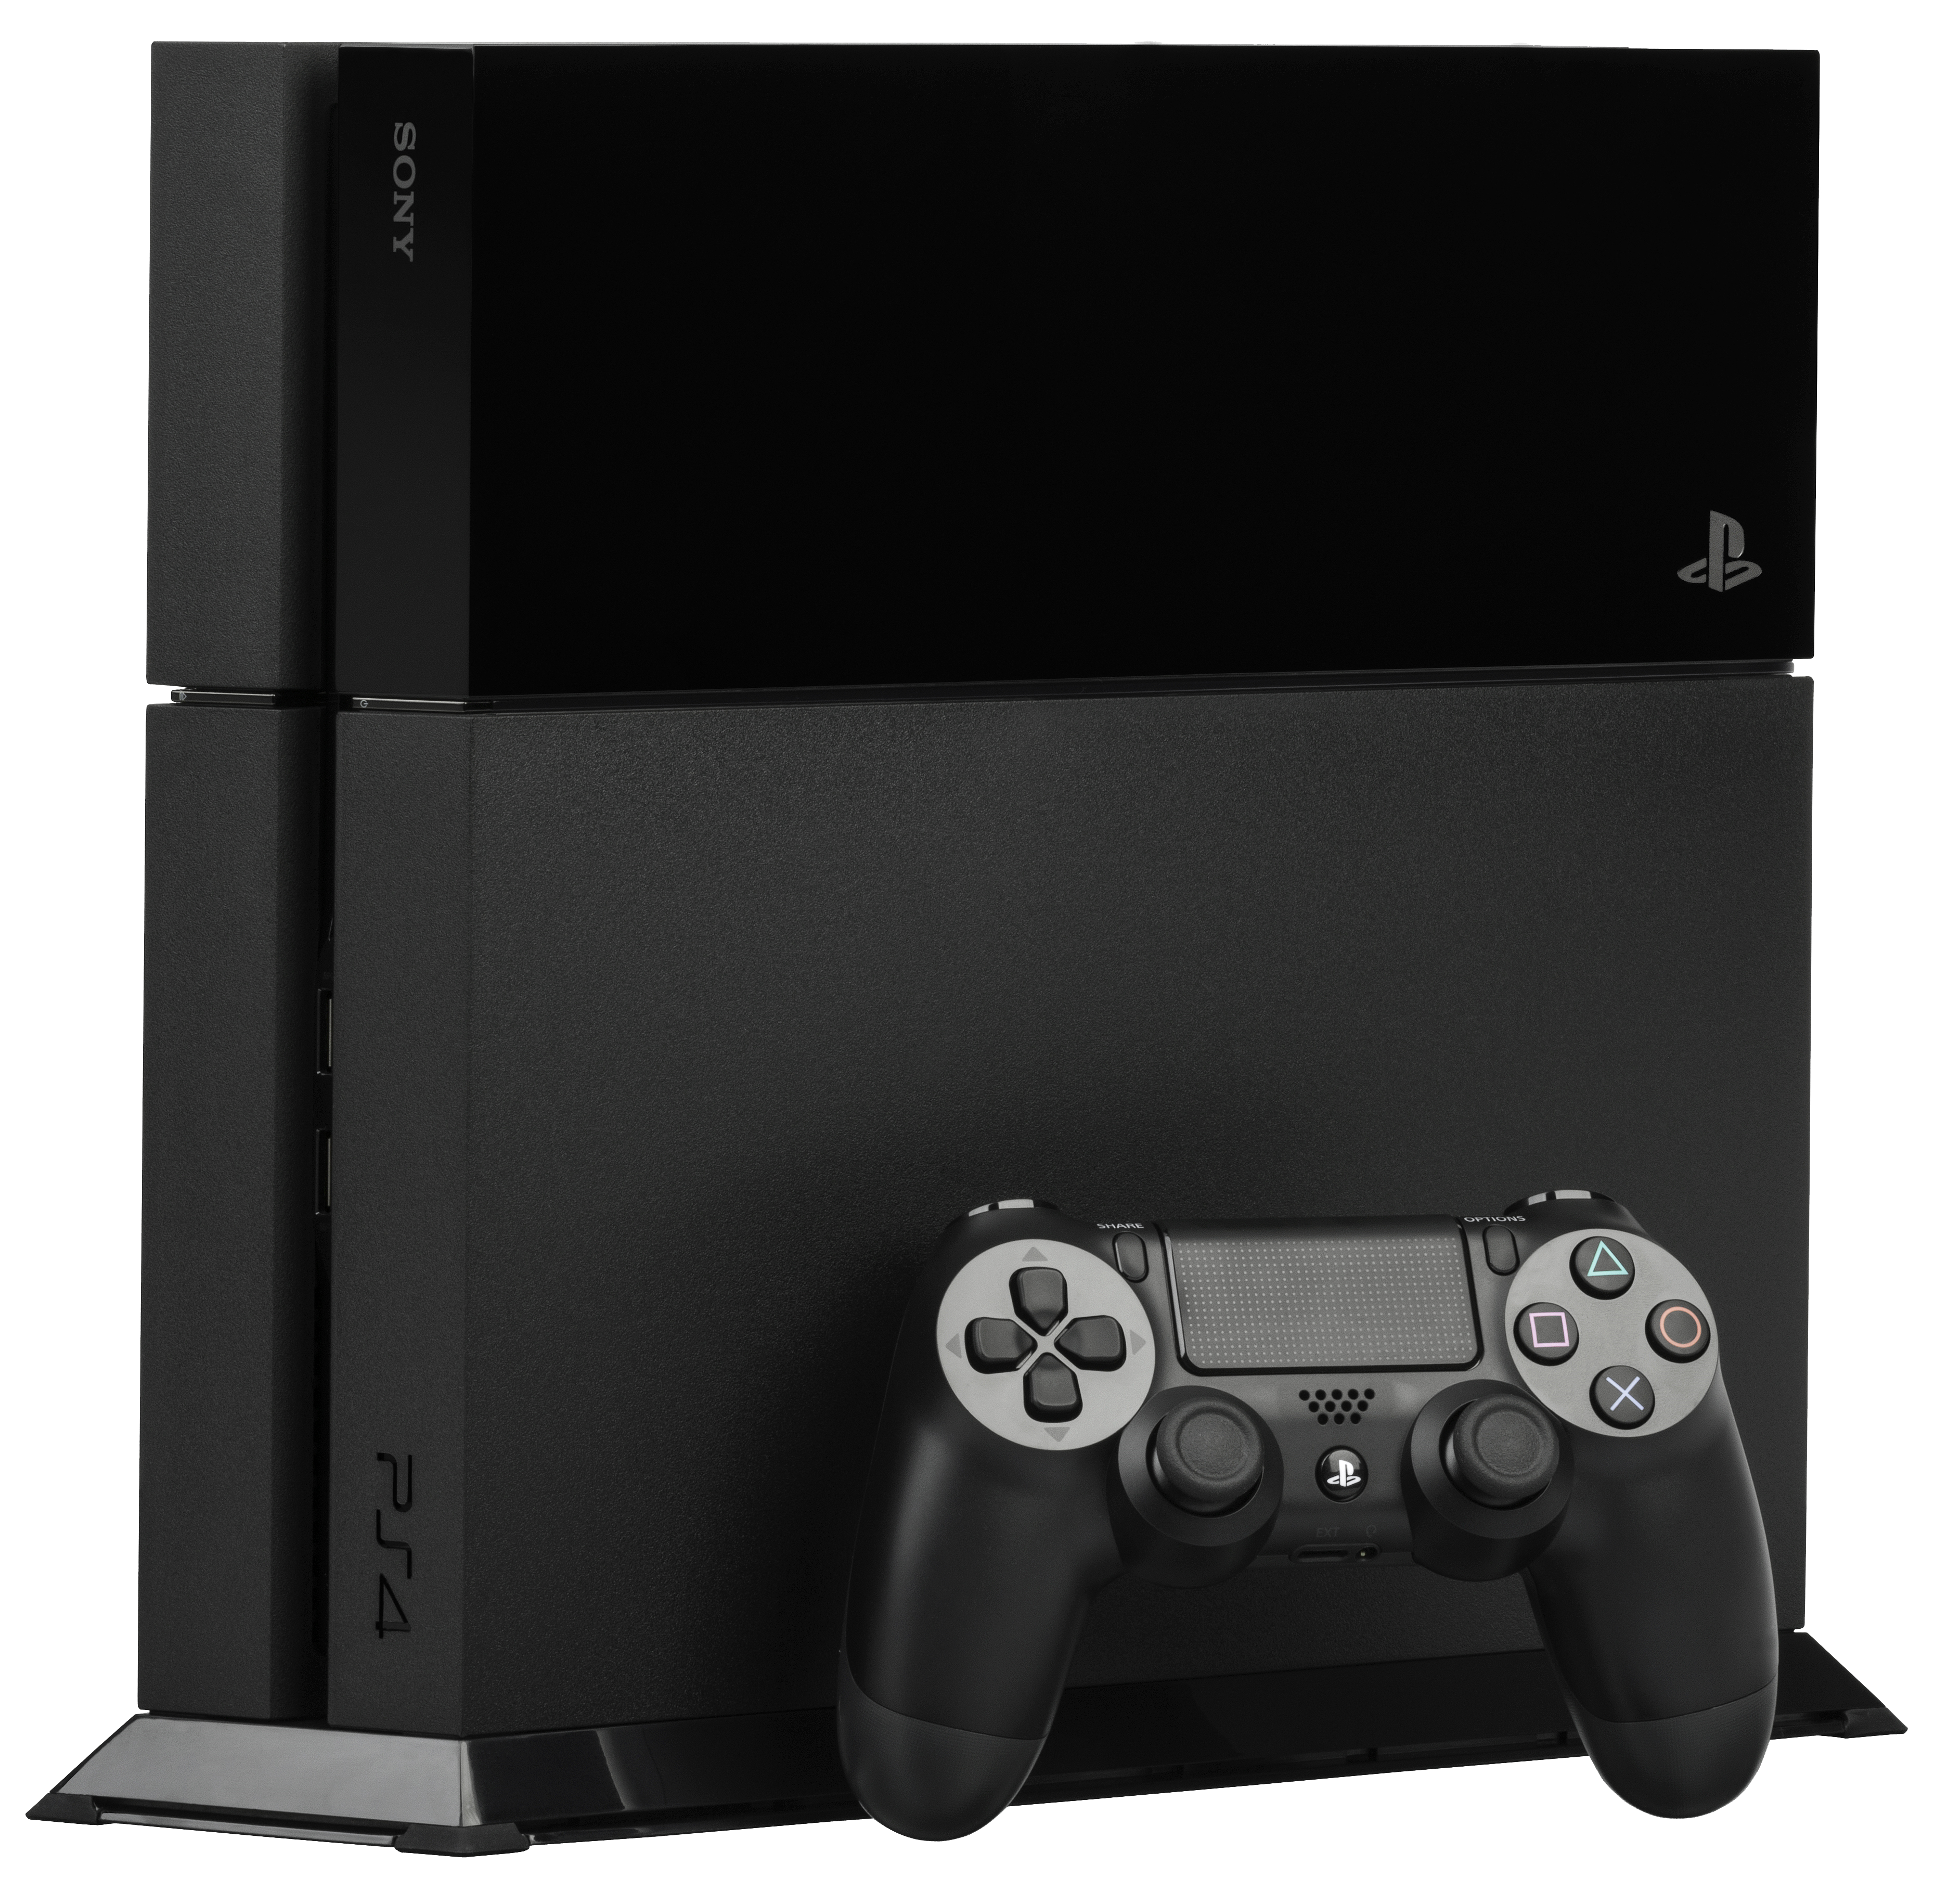 Playstation 4 png. File sony ps dualshock